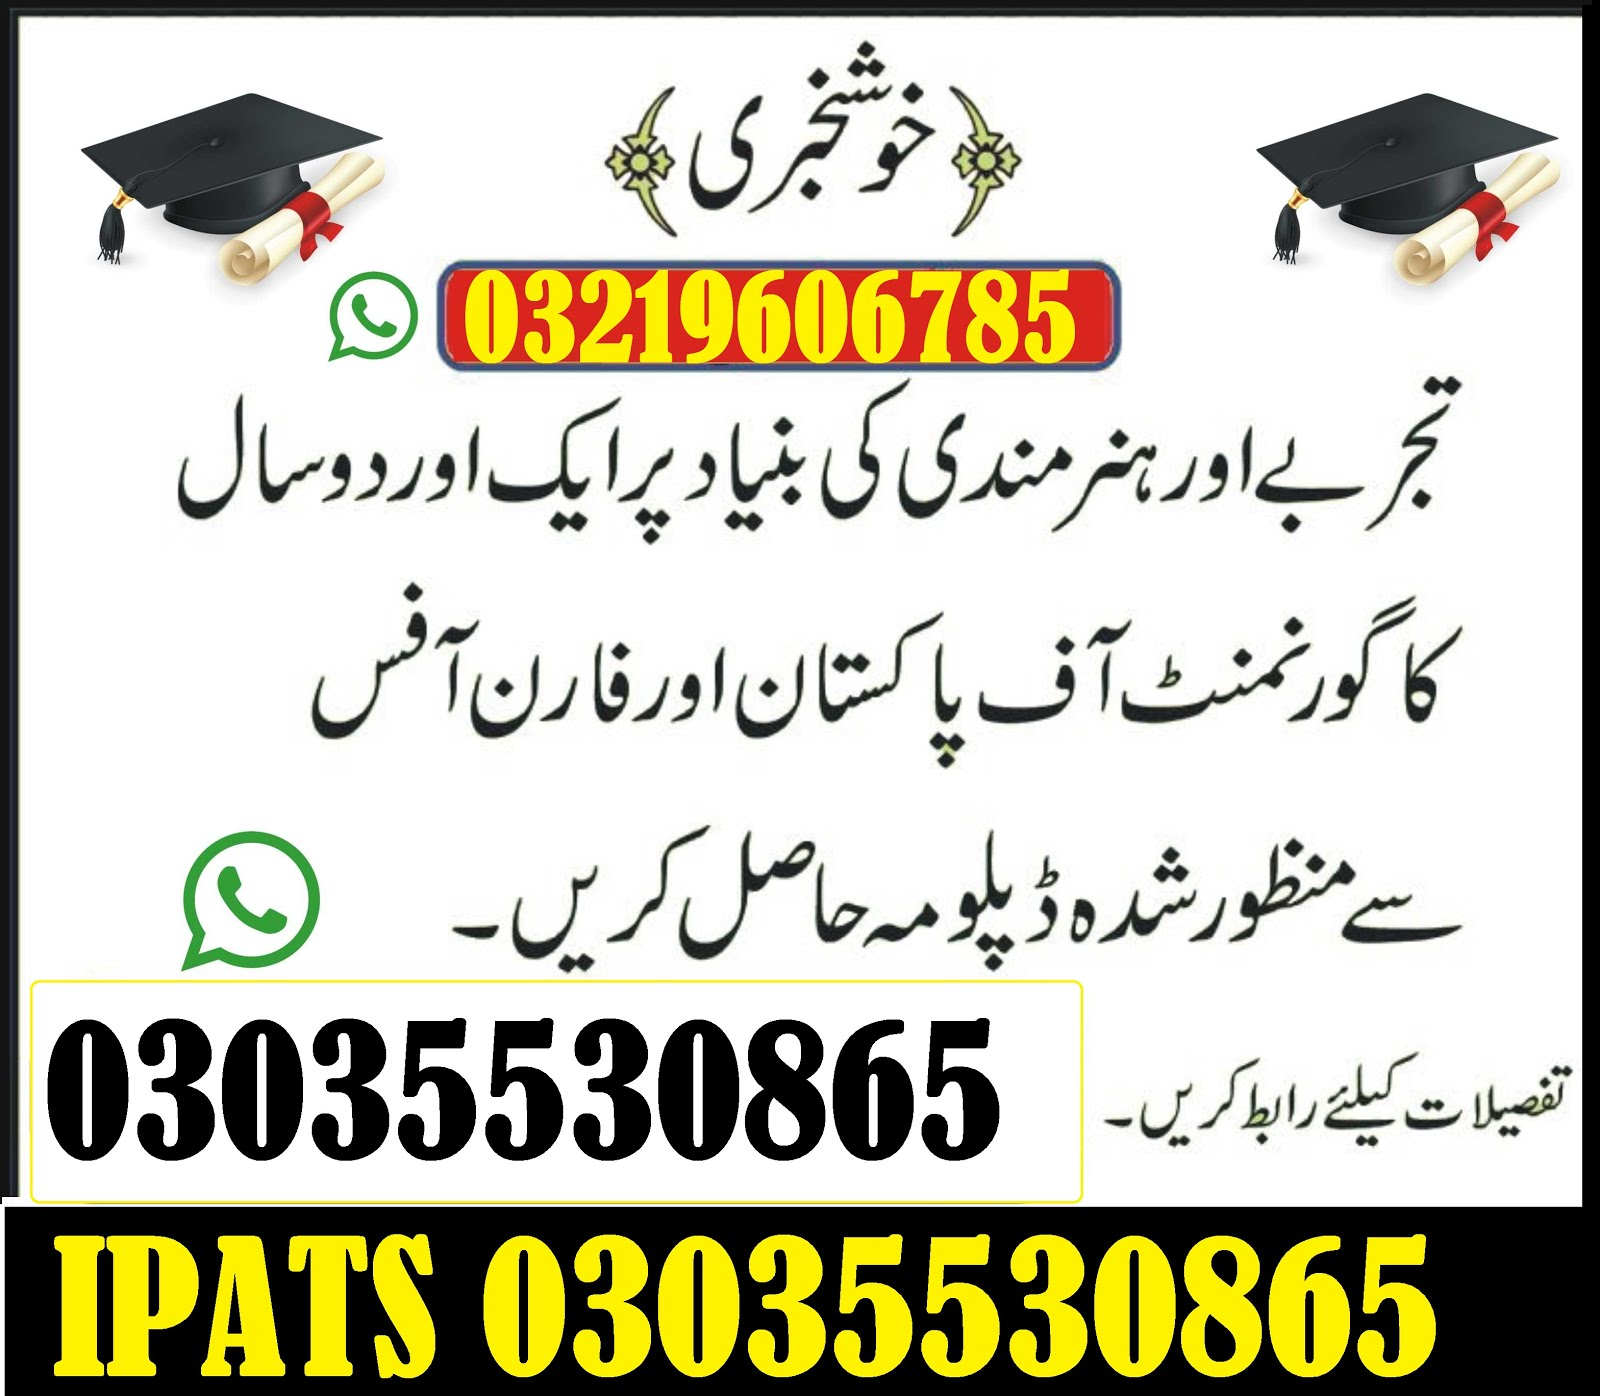 Experienced Based Civil Foreman Diploma in Rahimyar khan03219606785